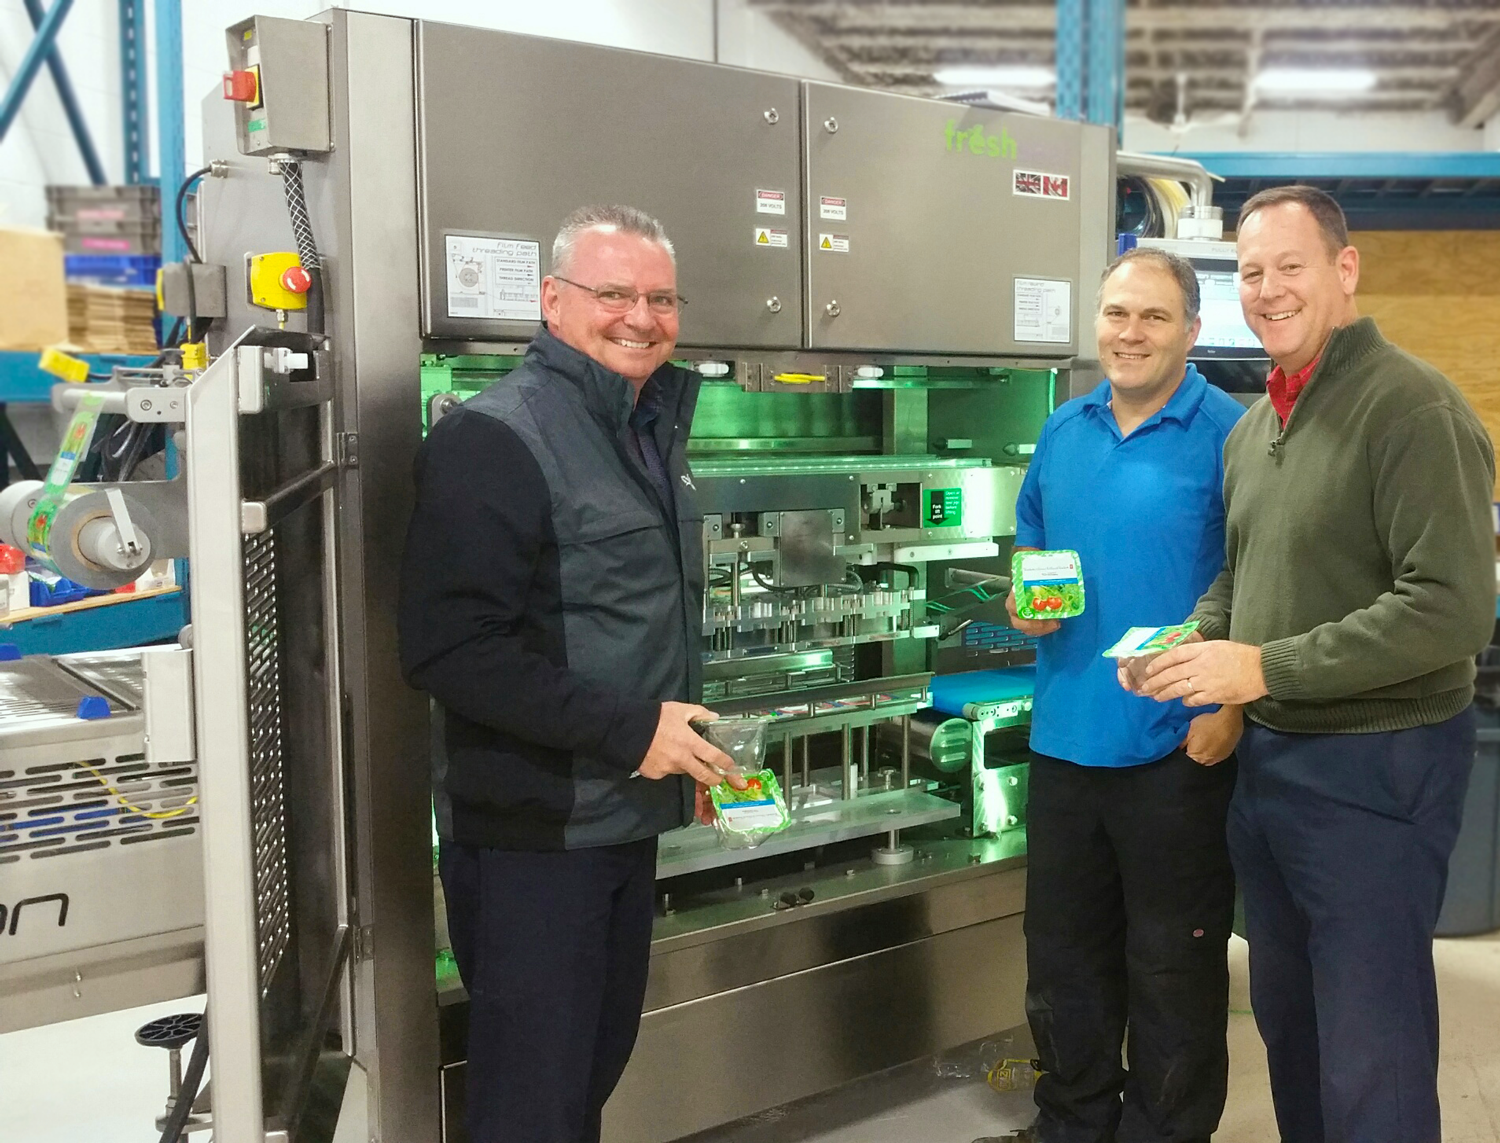 Doug Crowe, Sam Capson and Stuart Jackson with Packaging Automation Revolution Machine